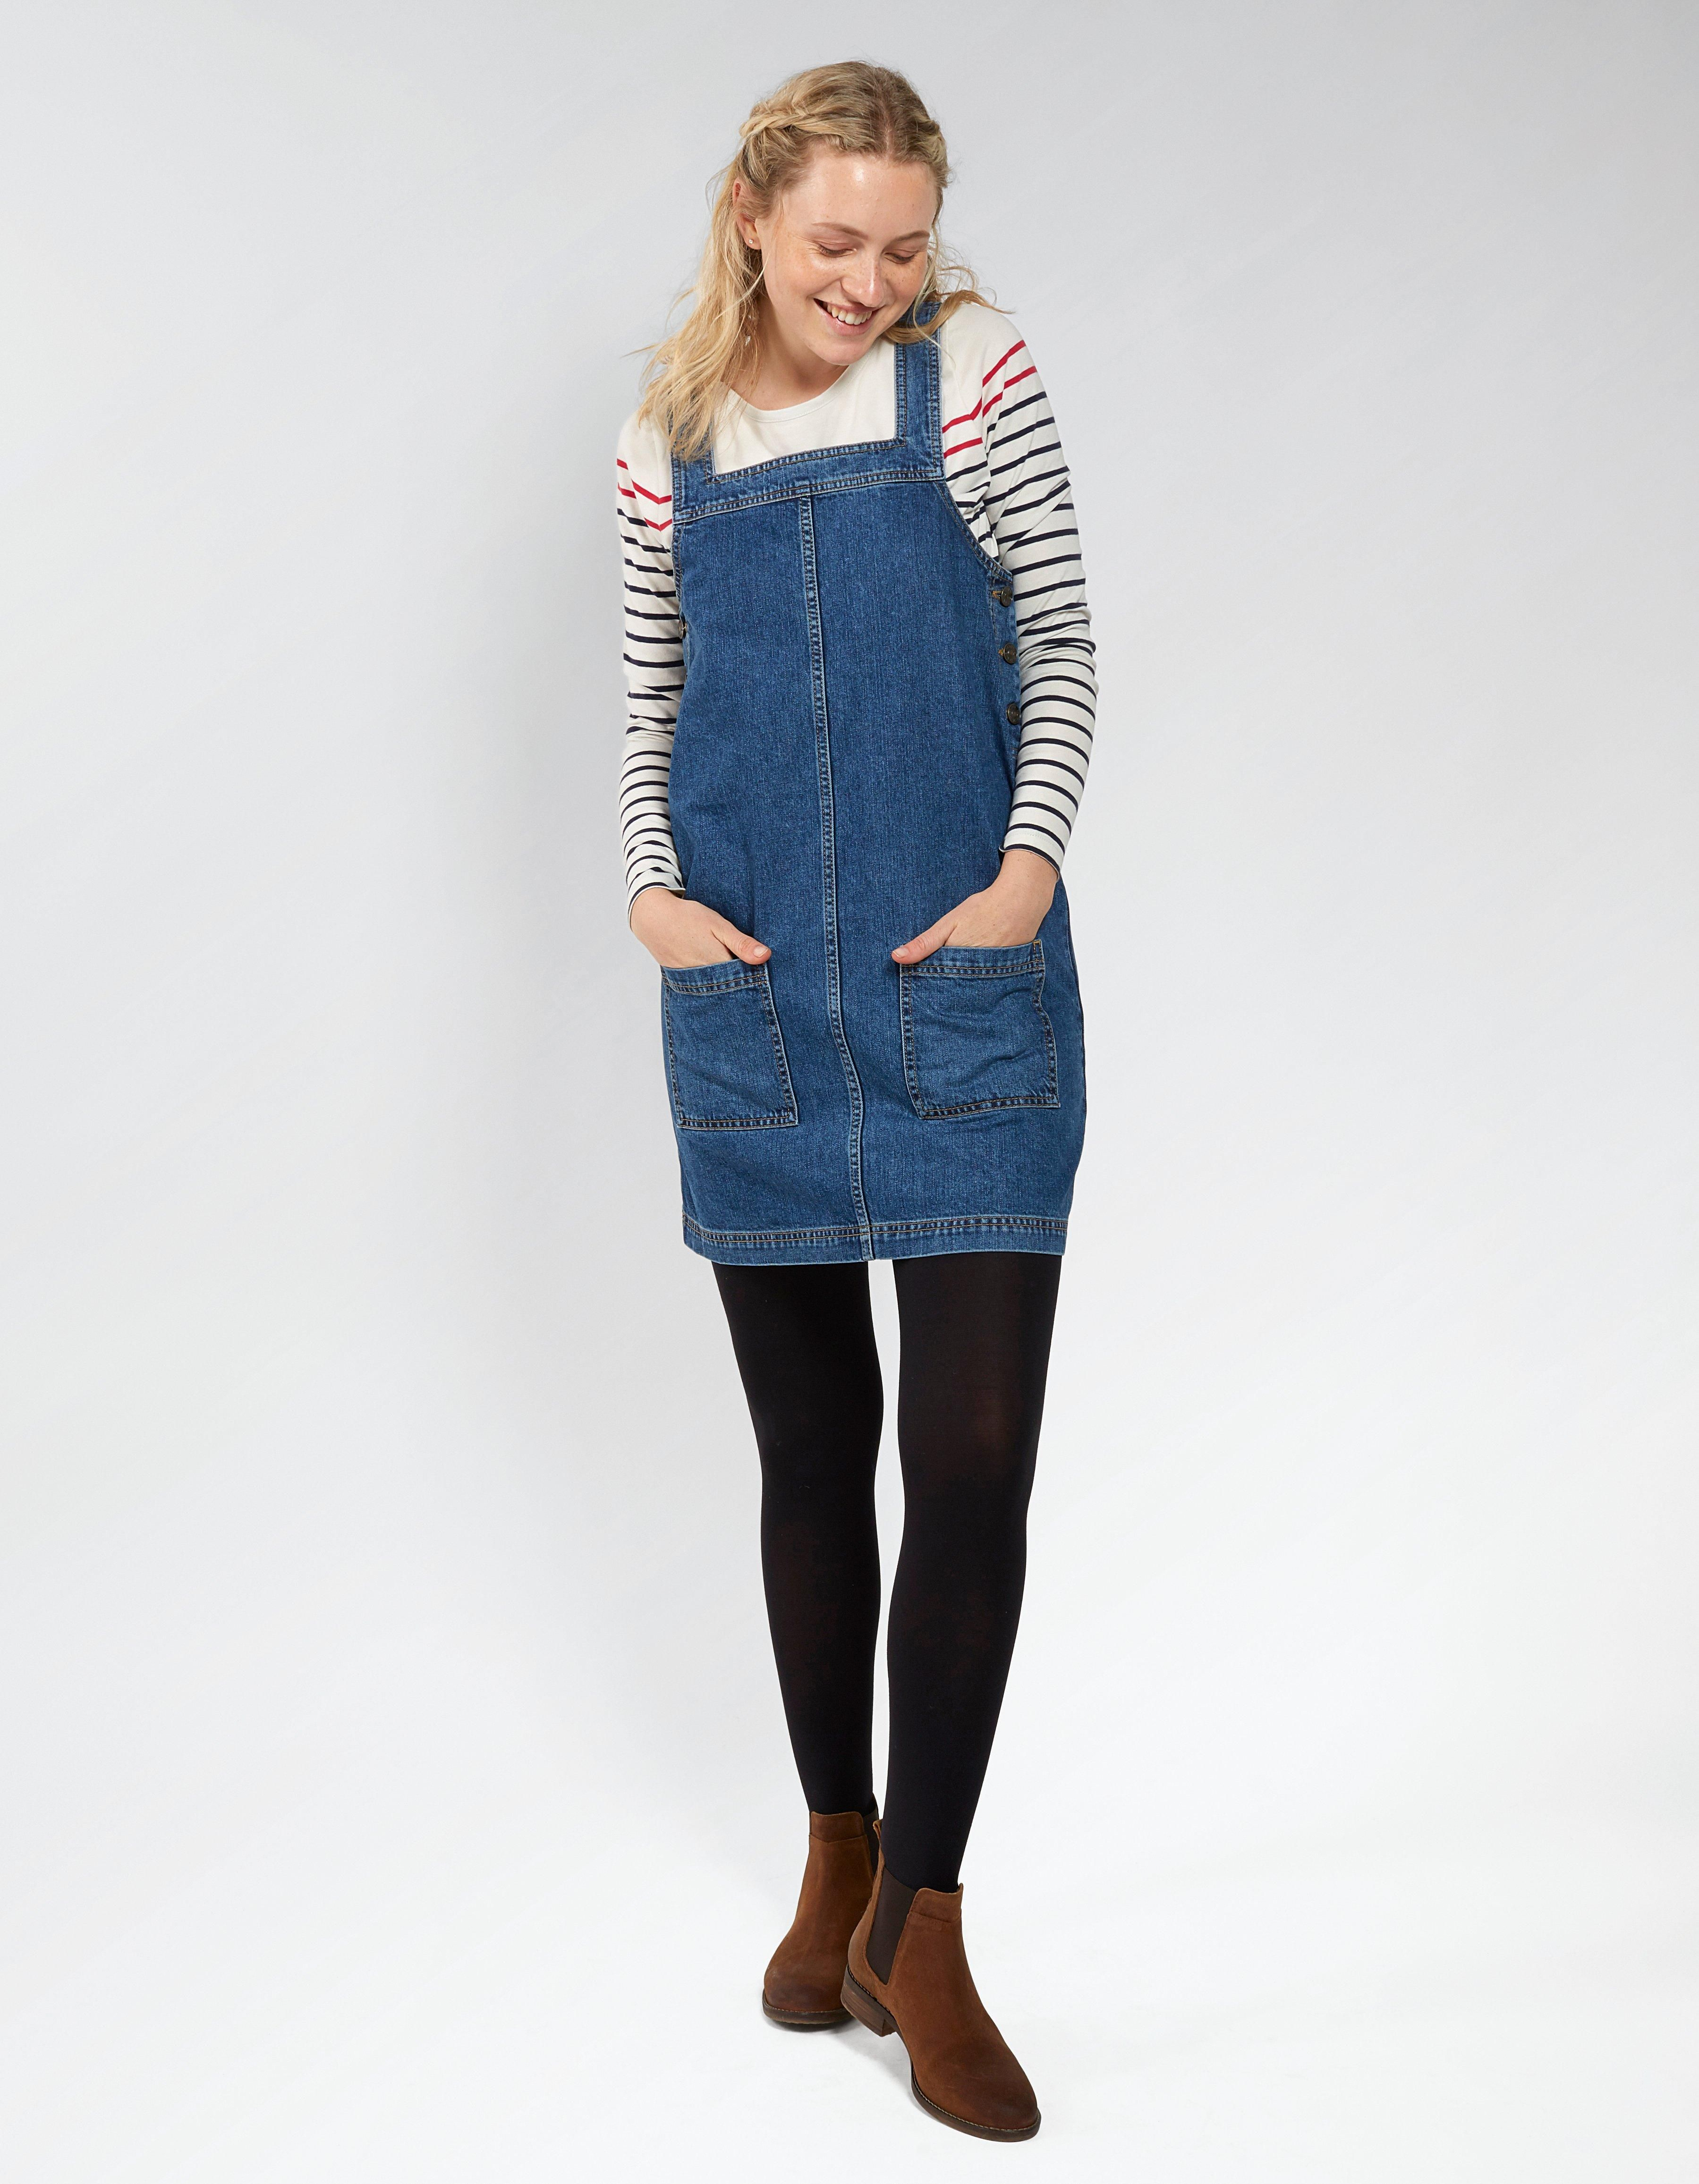 172b03951cdb3 Buy Denim Susan Denim Pinafore Dress today from FatFace. FREE UK Delivery on  all orders over £60.